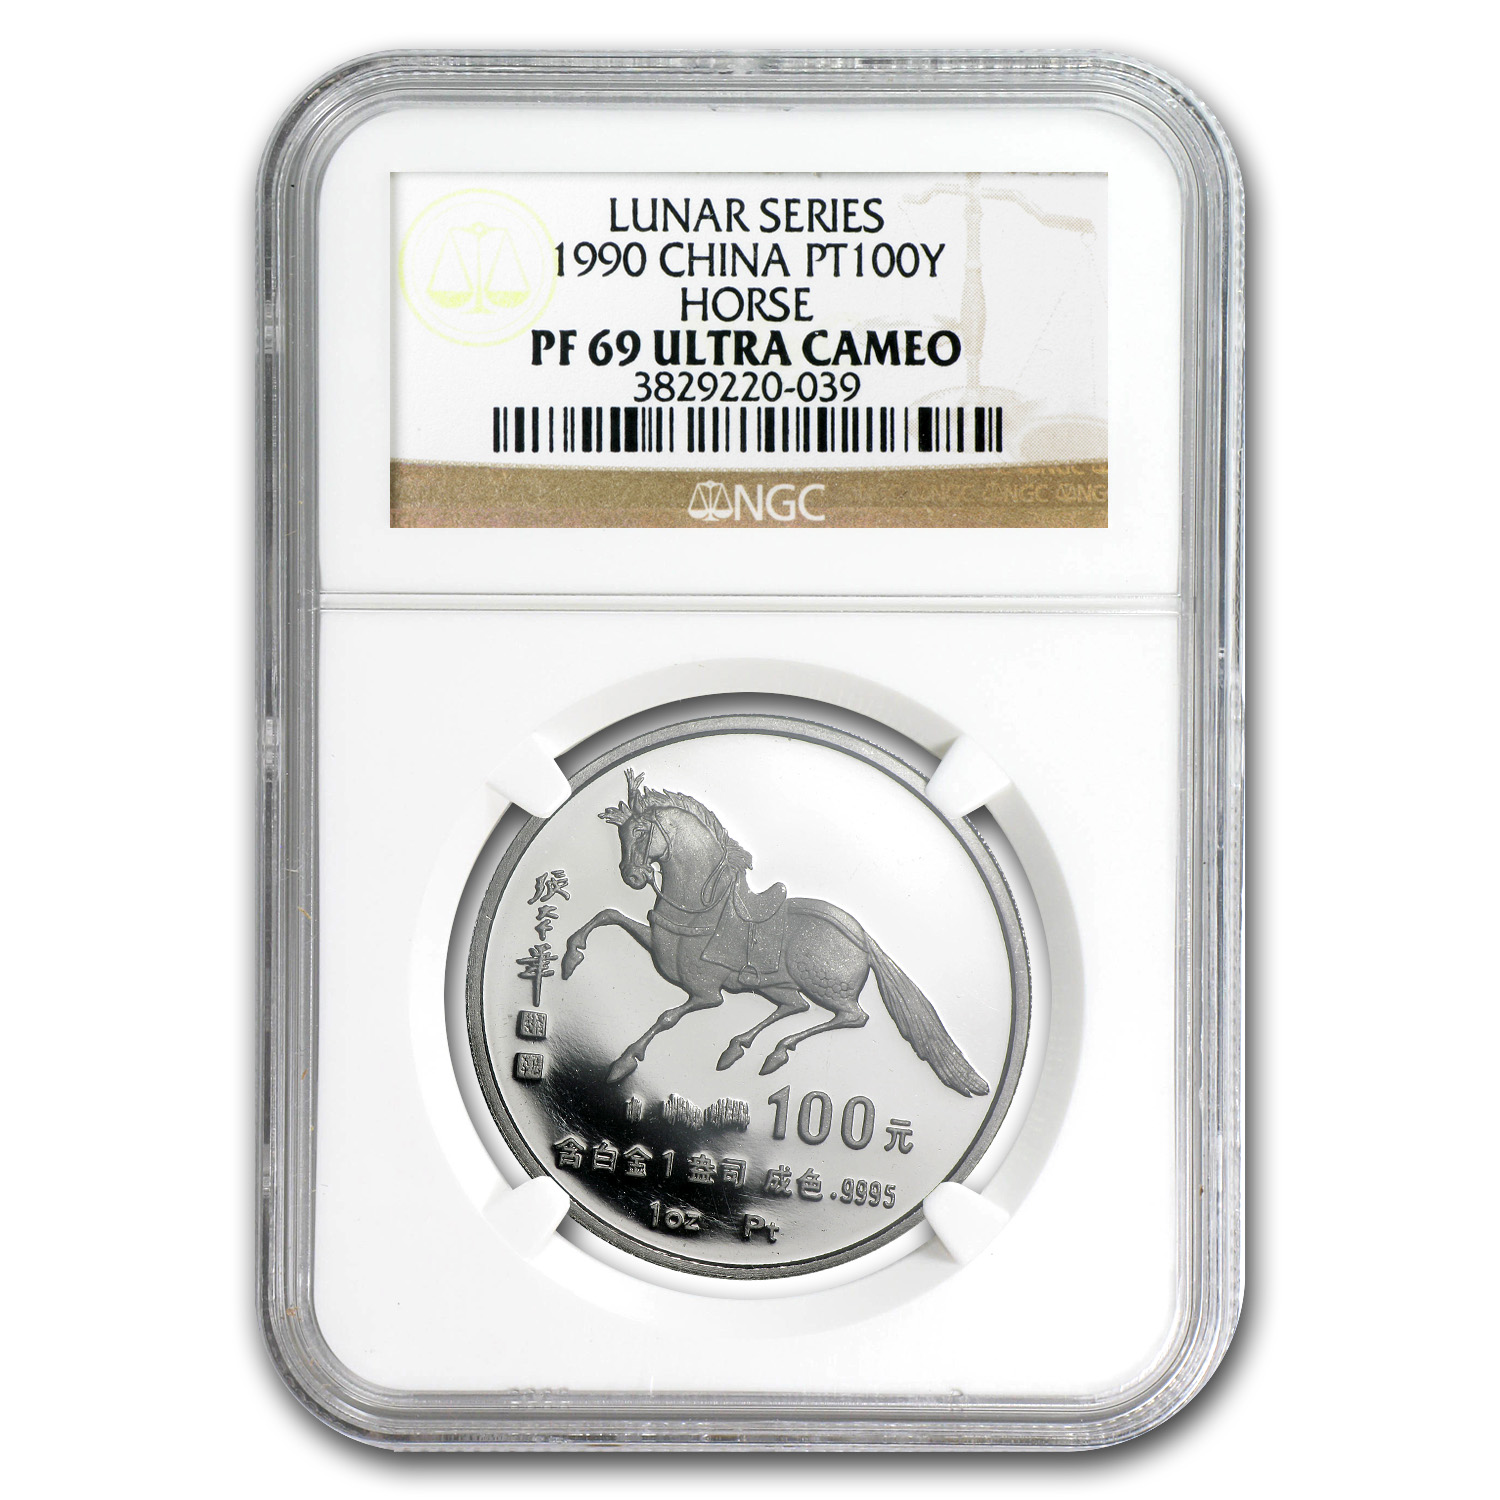 1990 1 oz Chinese Horse Proof Platinum 100 Yuan NGC PF-69